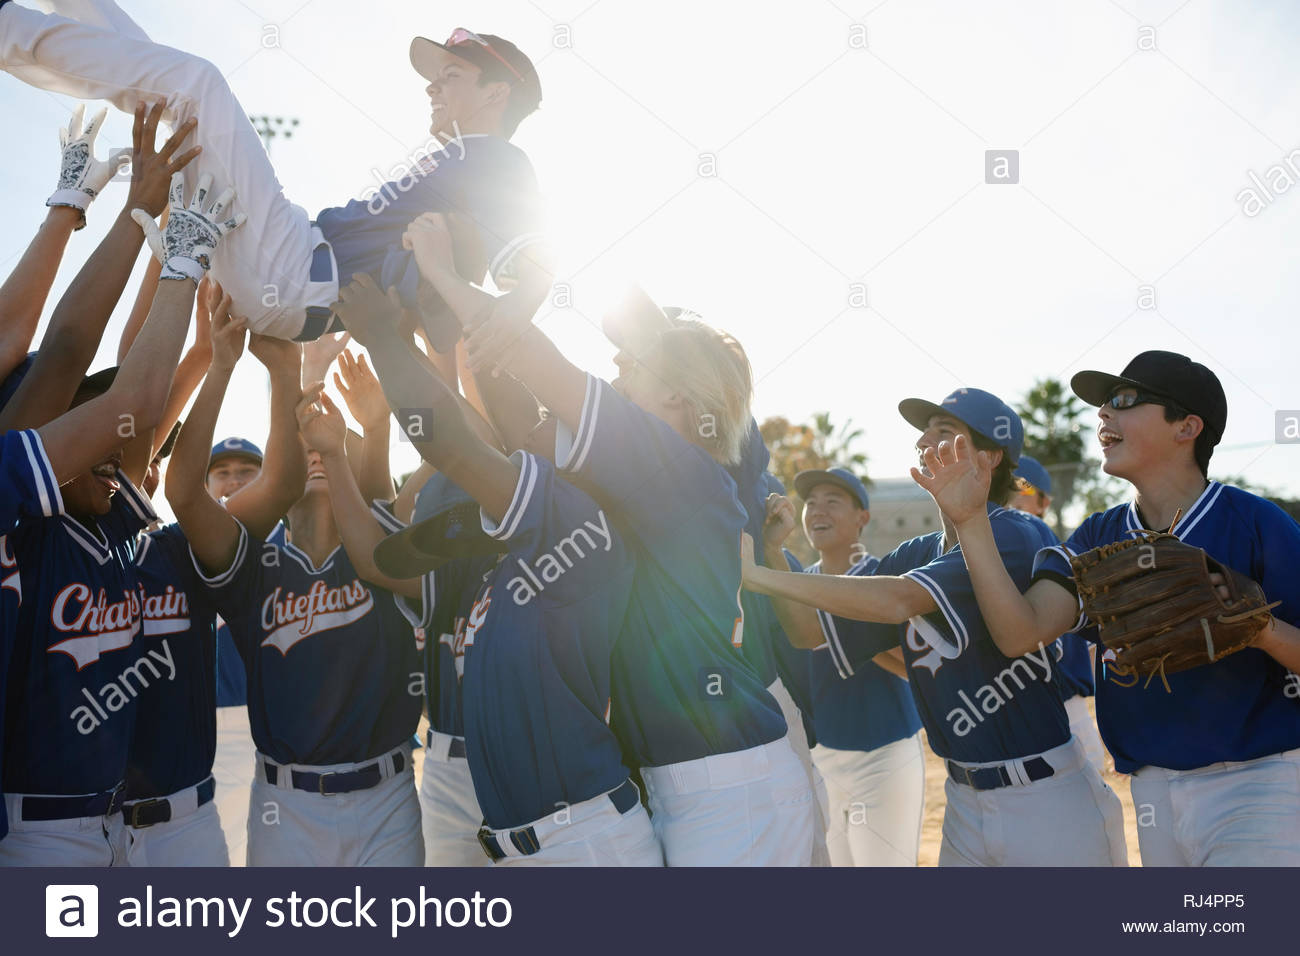 Happy baseball team celebrating, carrying player overhead Stock Photo